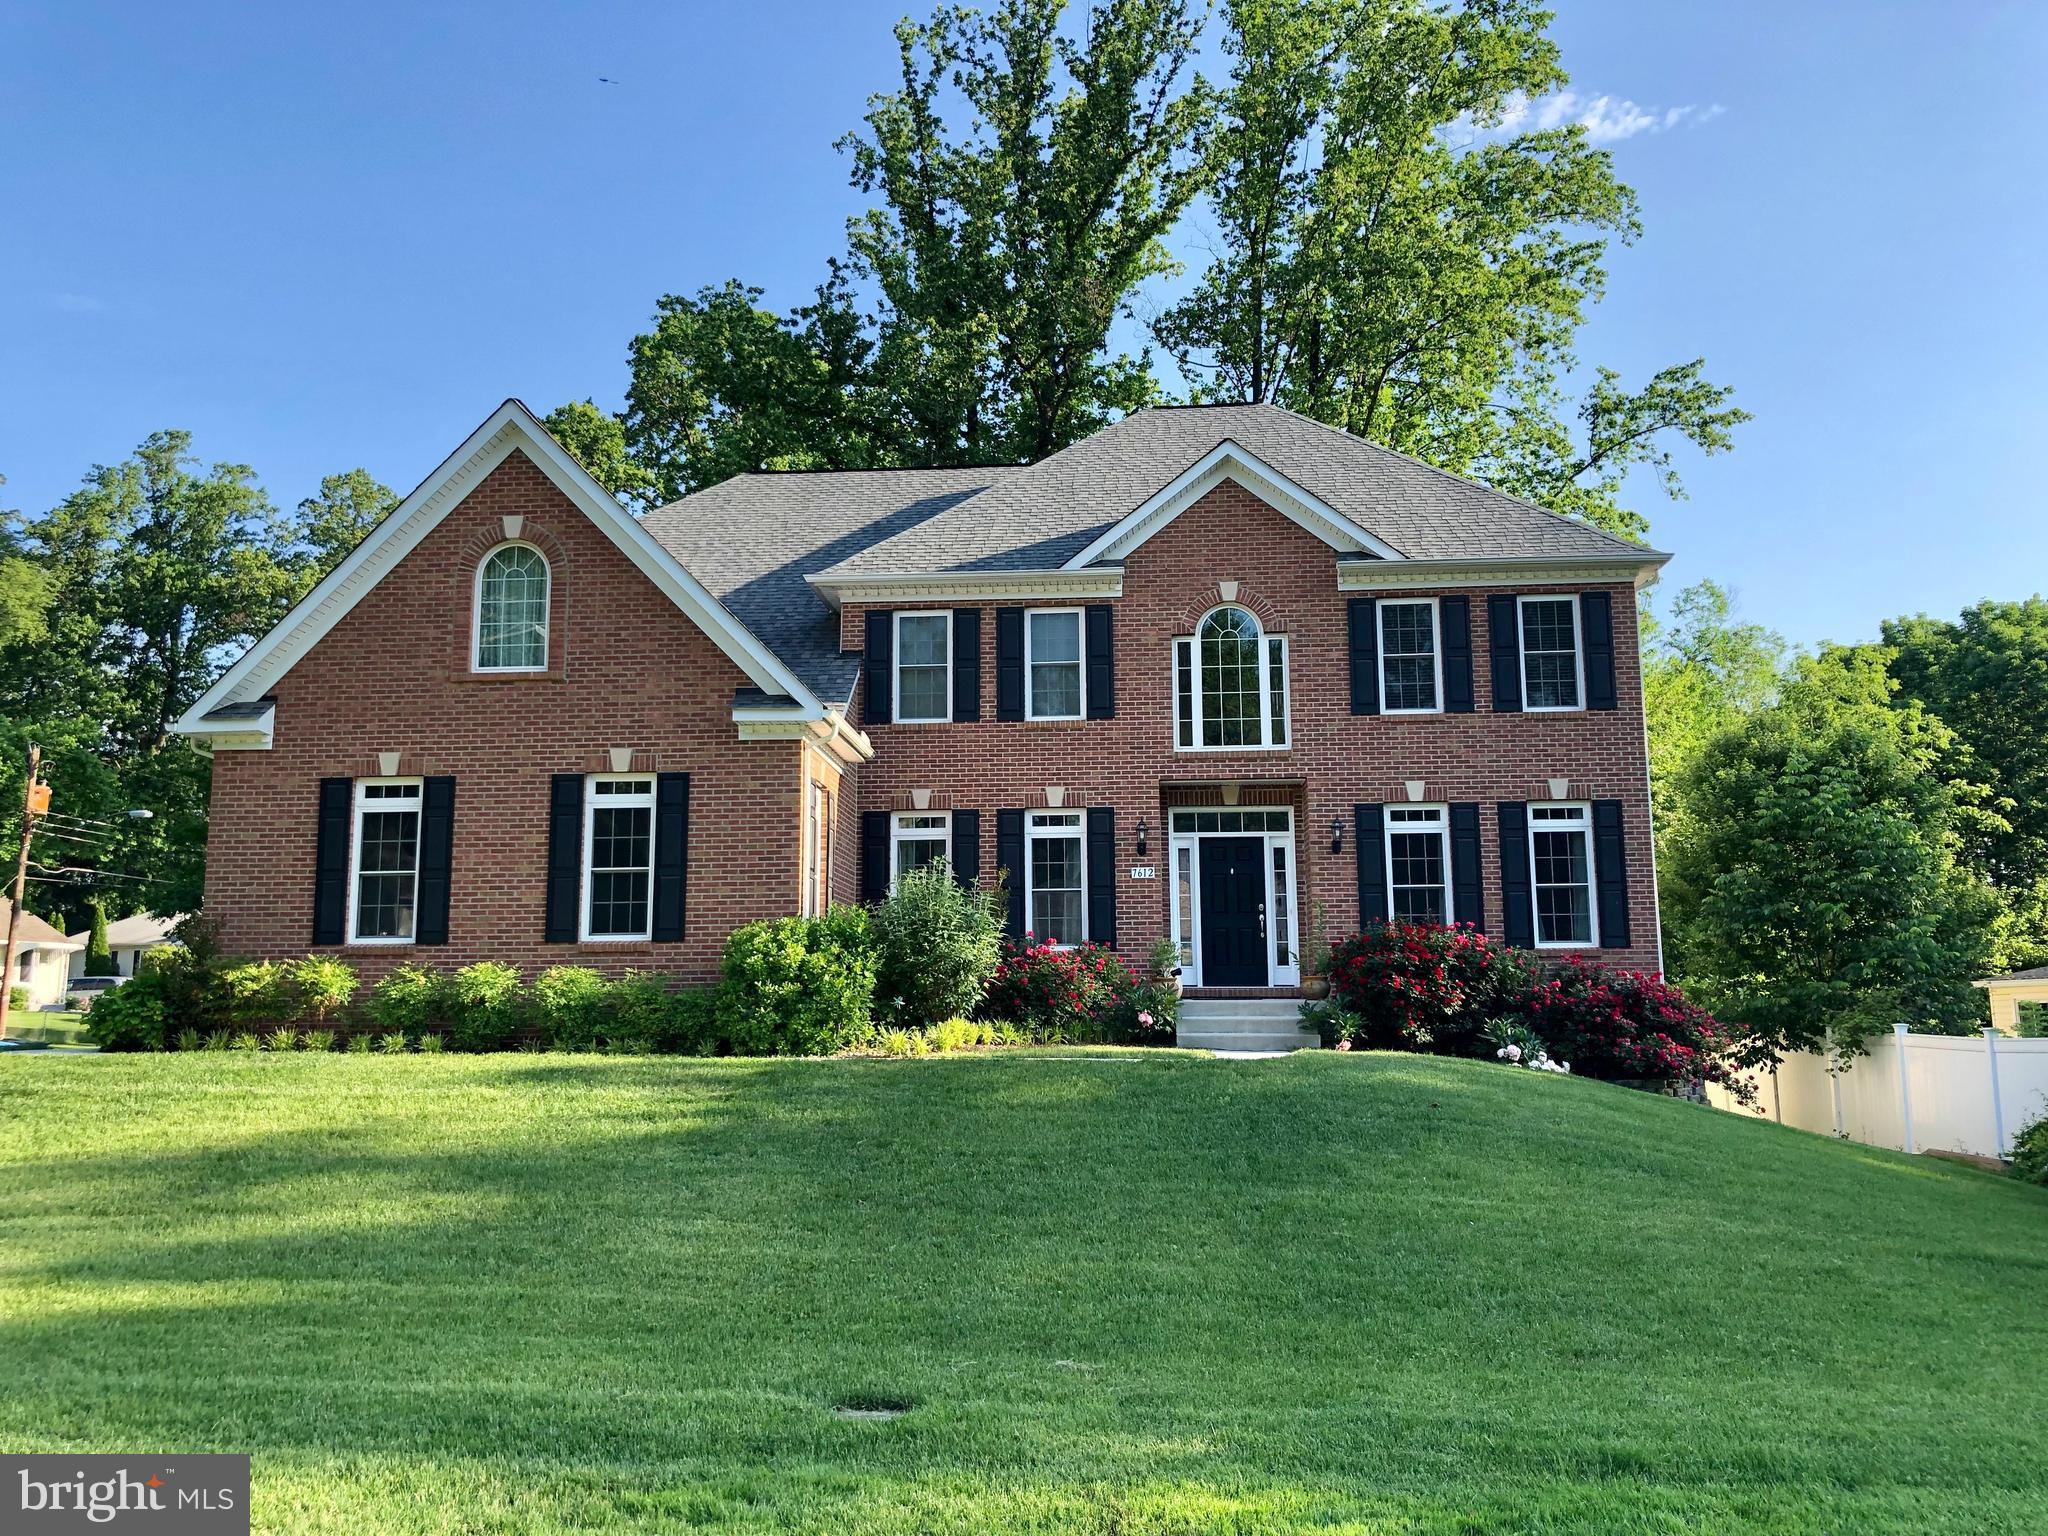 7612 FISHER DRIVE, FALLS CHURCH, VA 22043